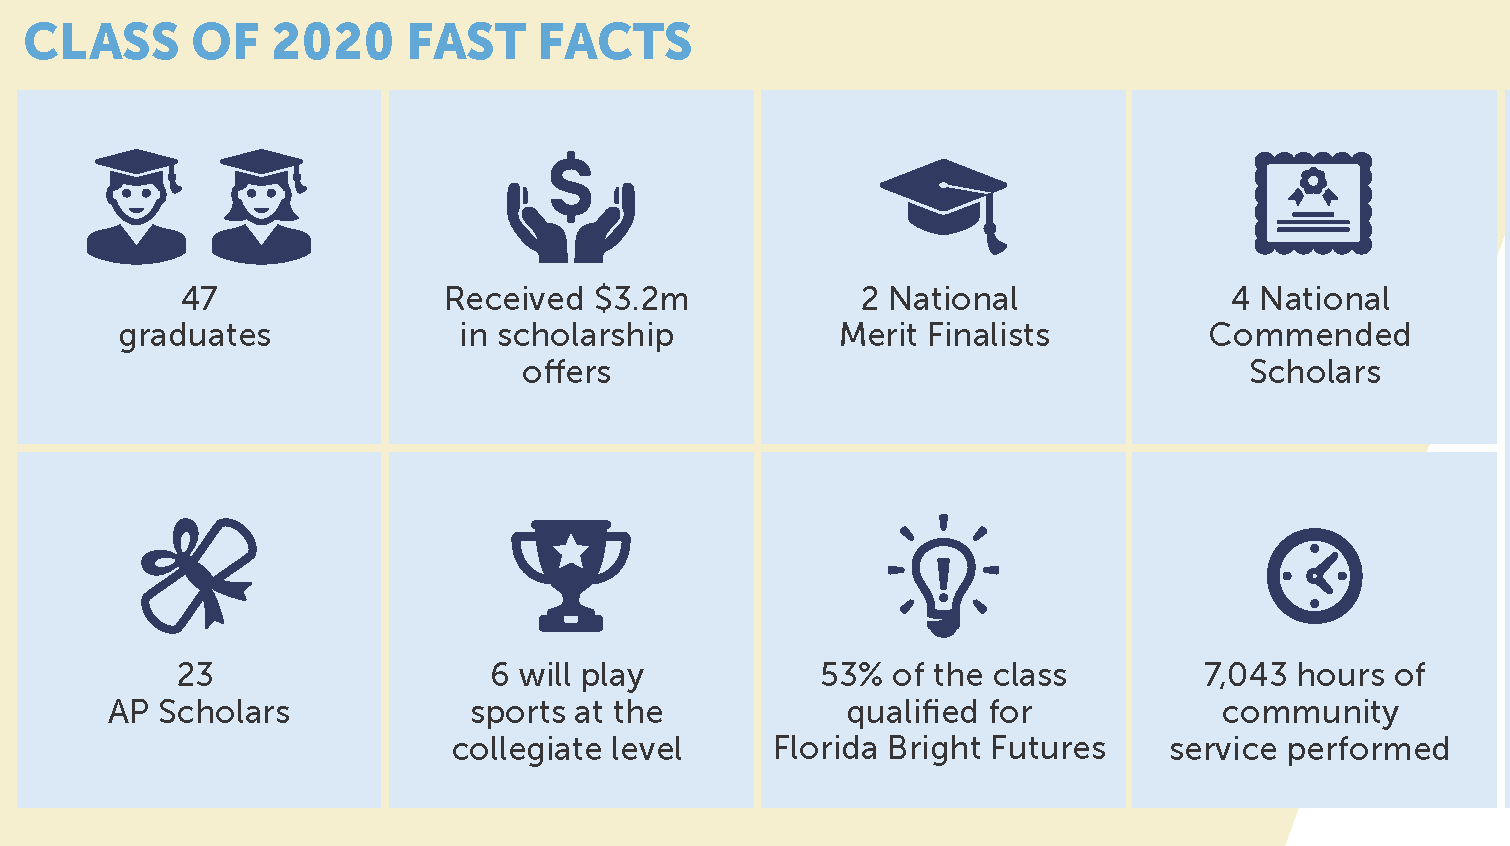 Class of 2020 Fast Facts